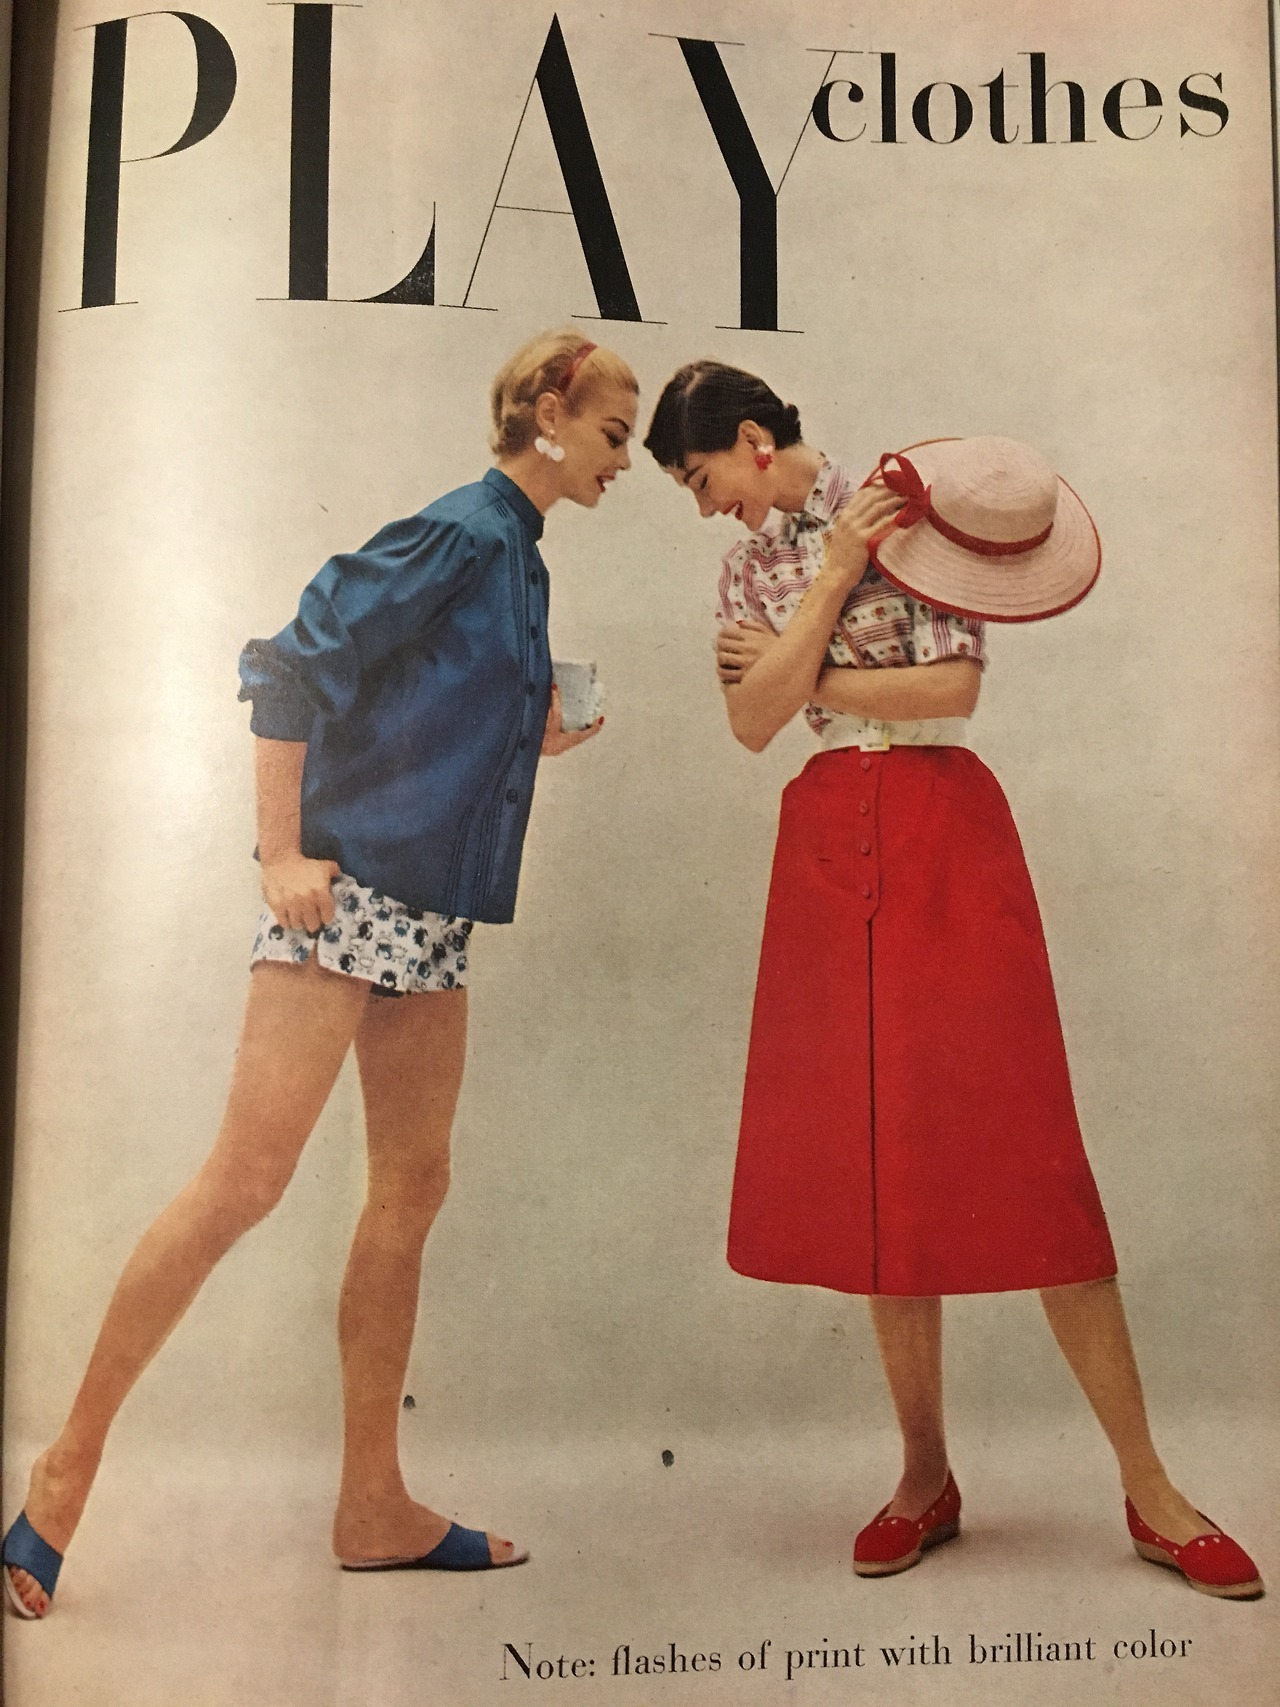 Play clothes.   Charm. June 1954.